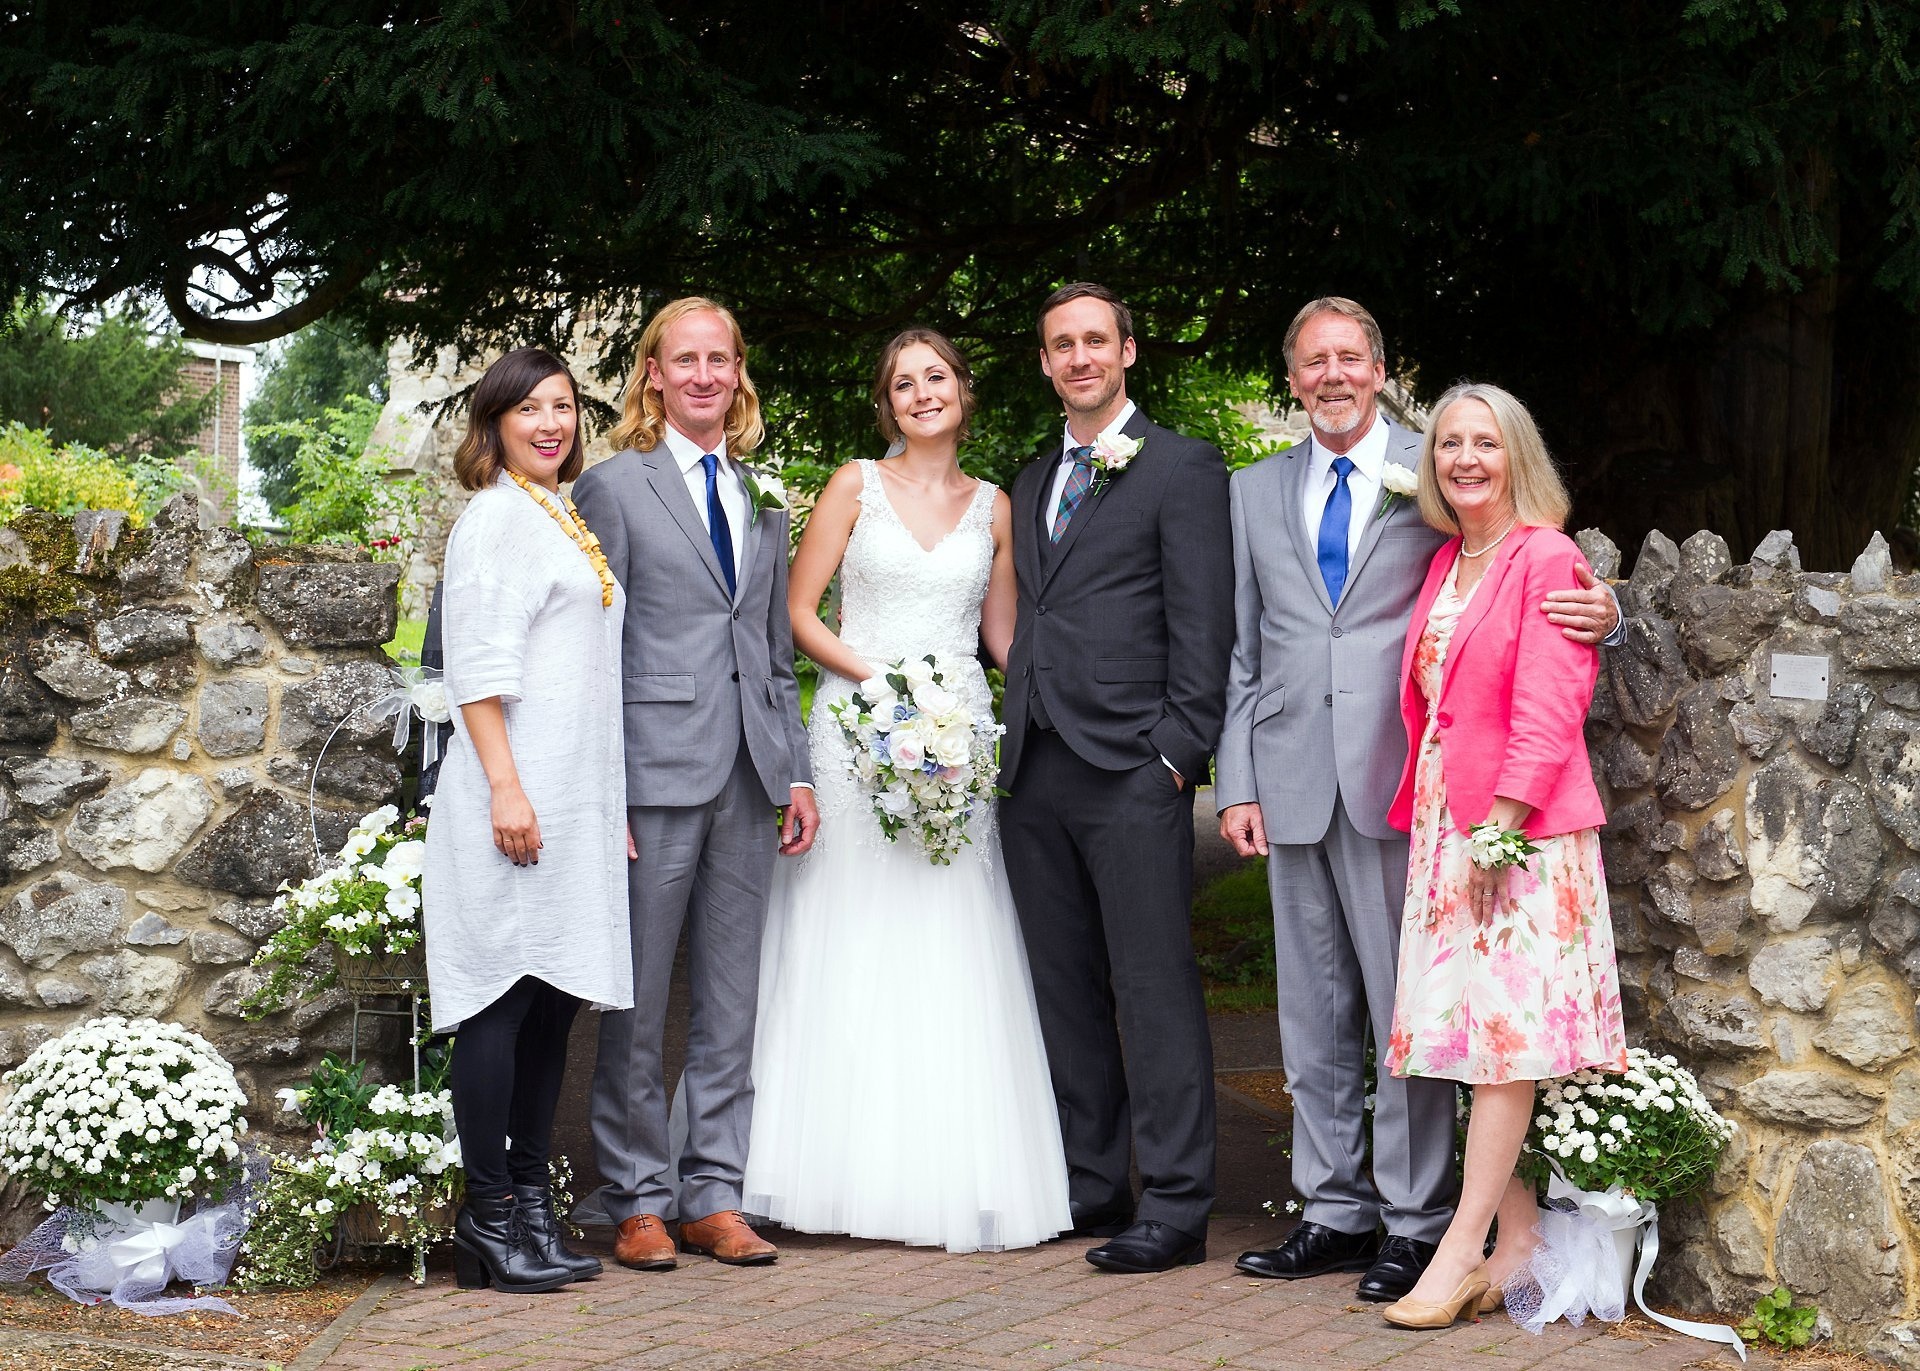 Family group photography at St Peter's Church, Ditton (Kent)